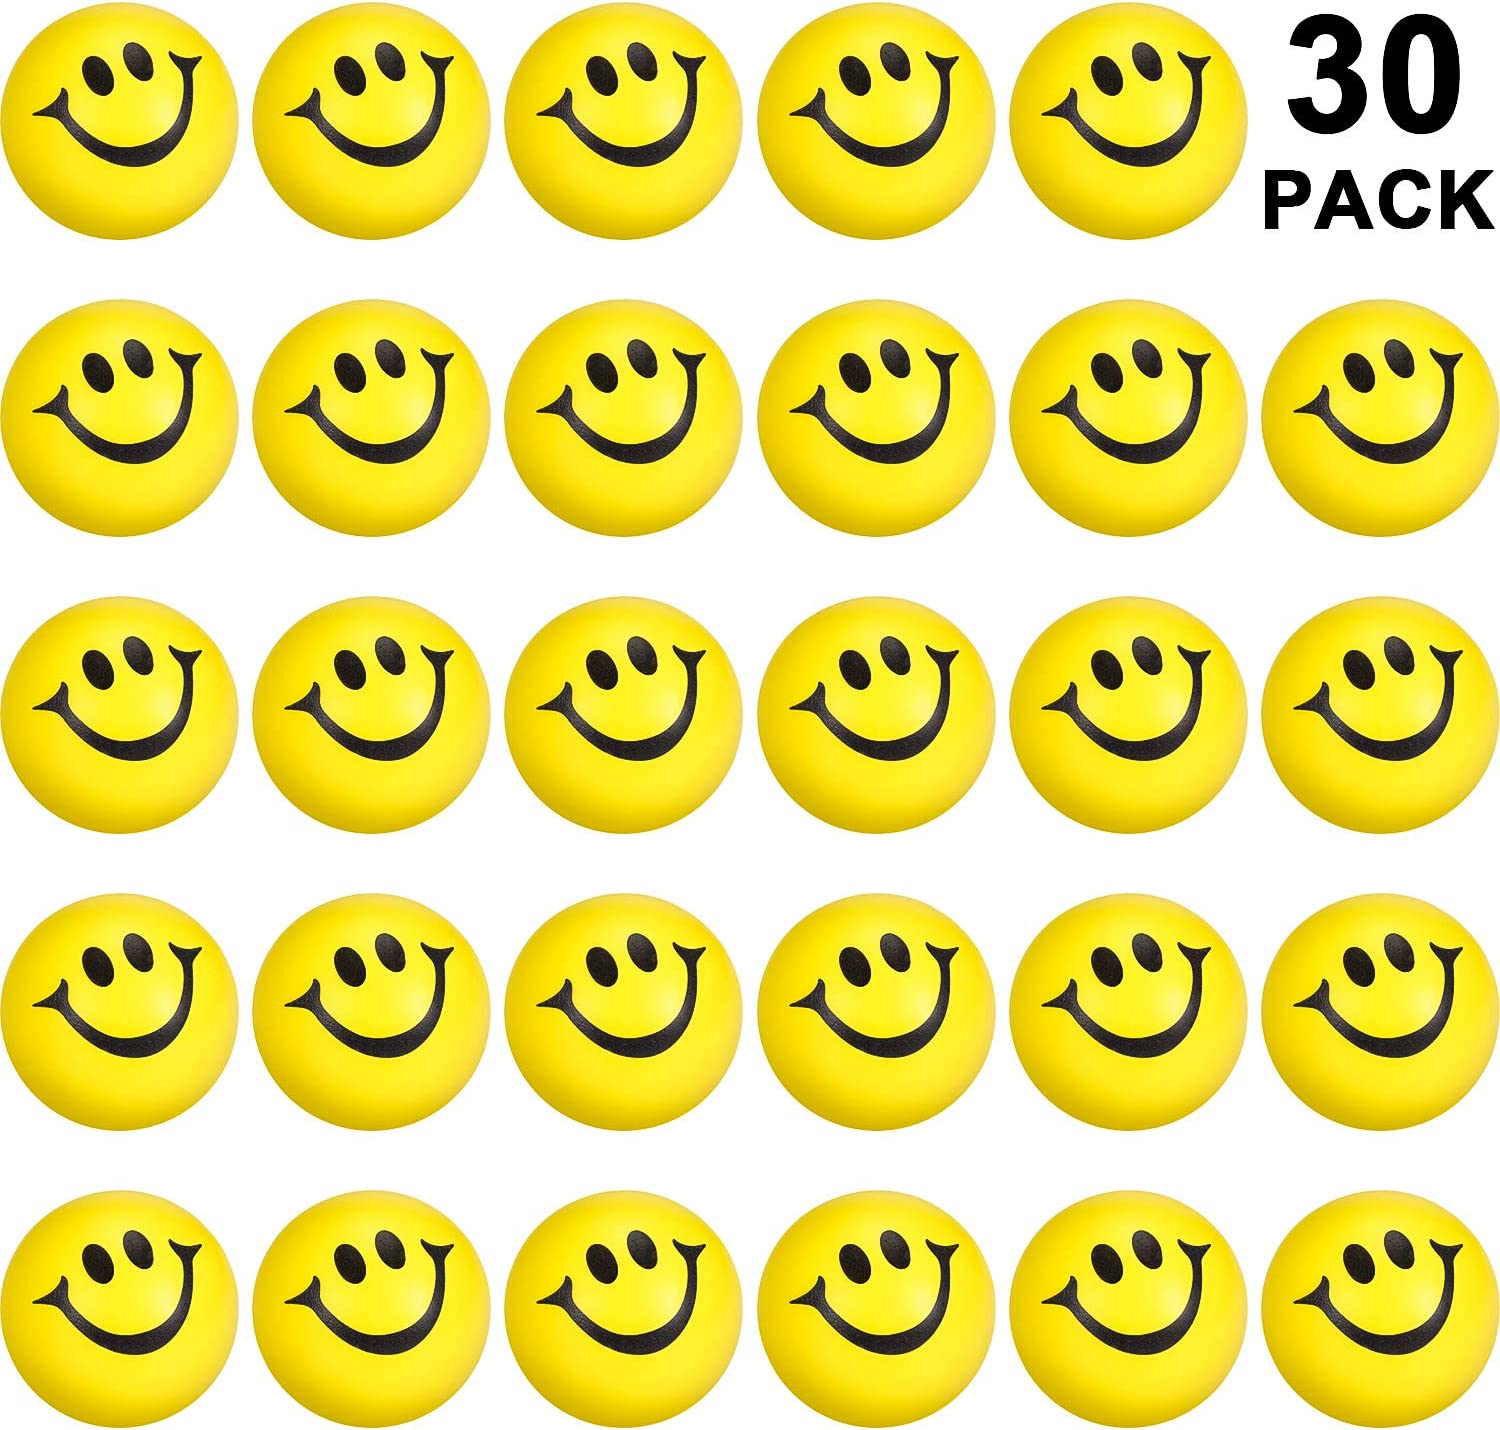 30 Packs Yellow Smile Funny Face Stress Balls, Mini Foam Balls, Happy Smile Stress Balls for School Carnival Reward, Party Bag Gift Fillers (30 Packs)